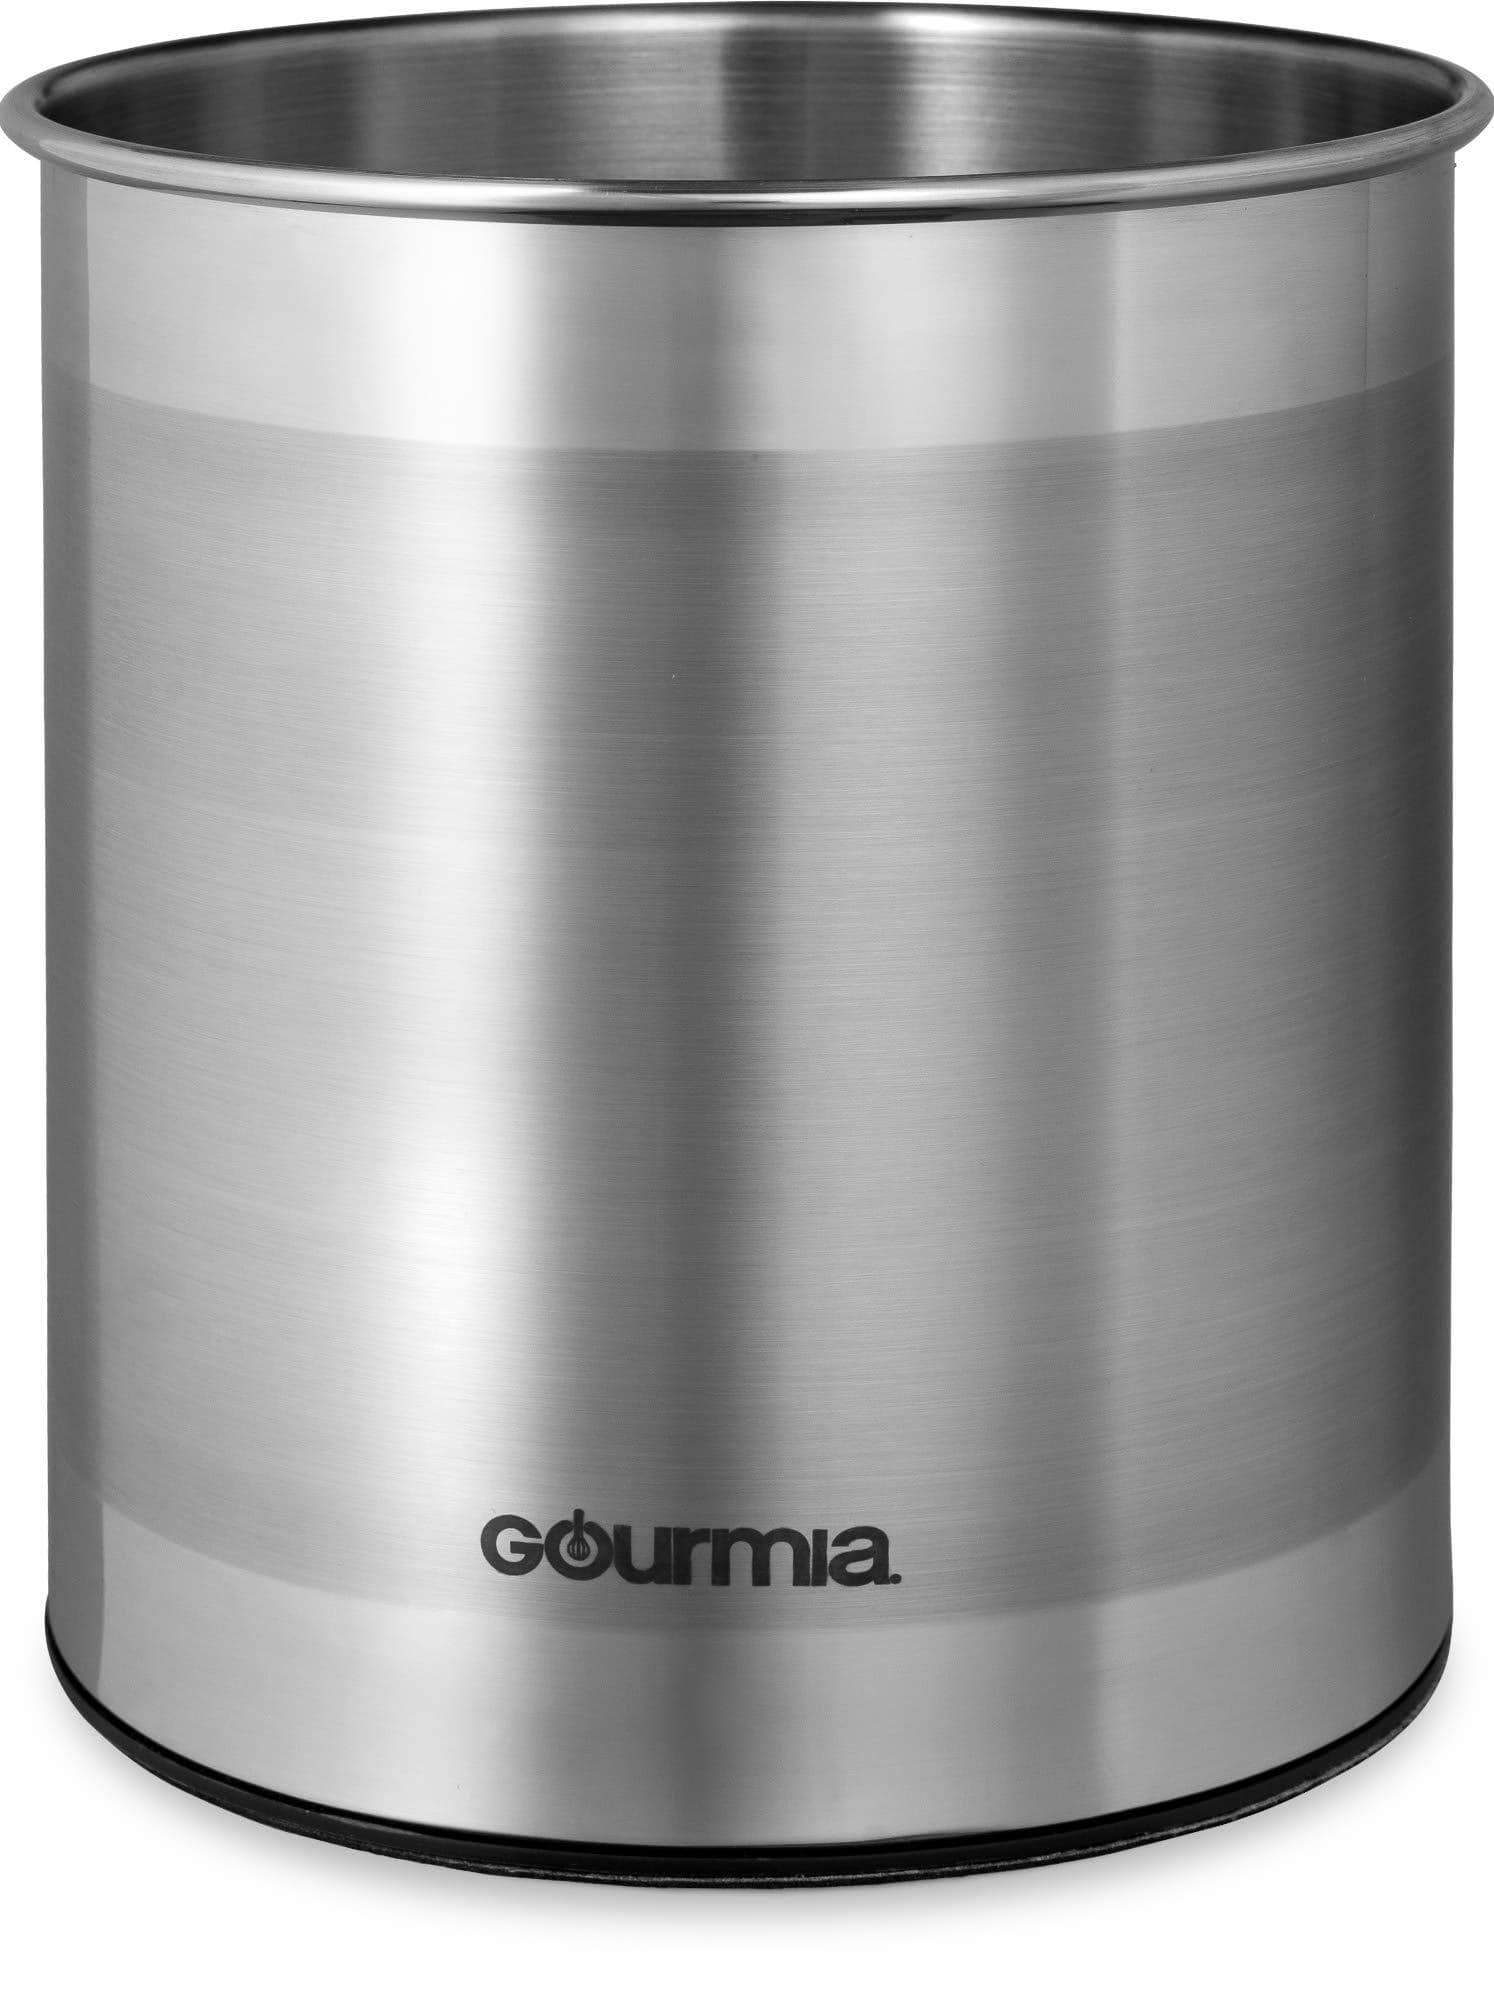 Budget gourmia gch9345 rotating kitchen utensil holder spinning stainless steel organizer to store cooking and serving tools dishwasher safe non slip bottom use as caddy